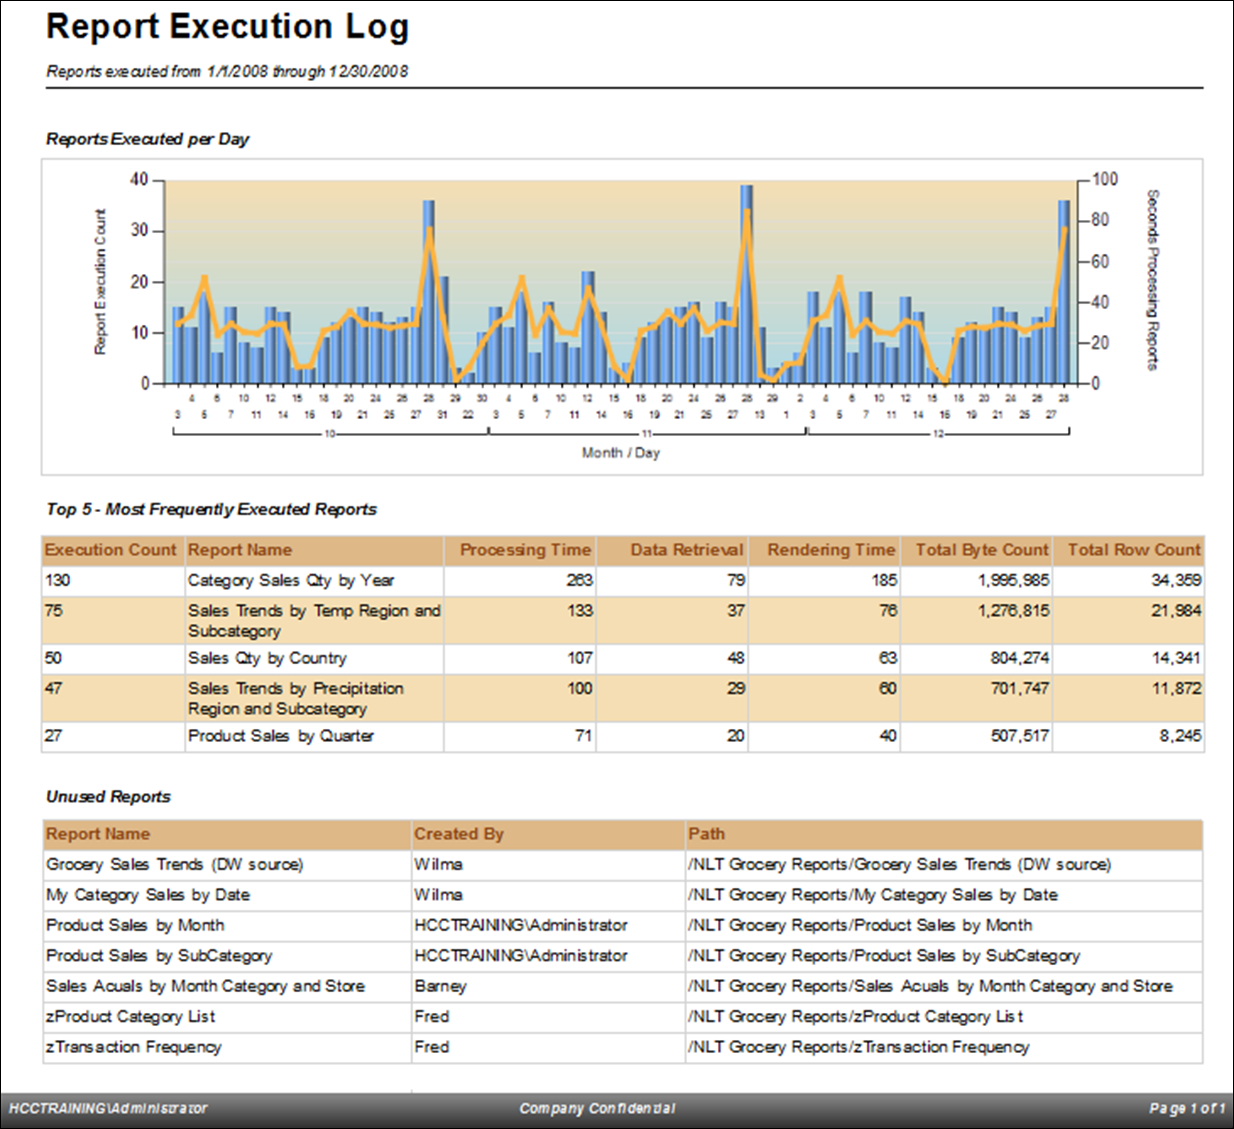 Sql server reporting services report execution log sql pinterest sql server reporting services report execution log fandeluxe Choice Image